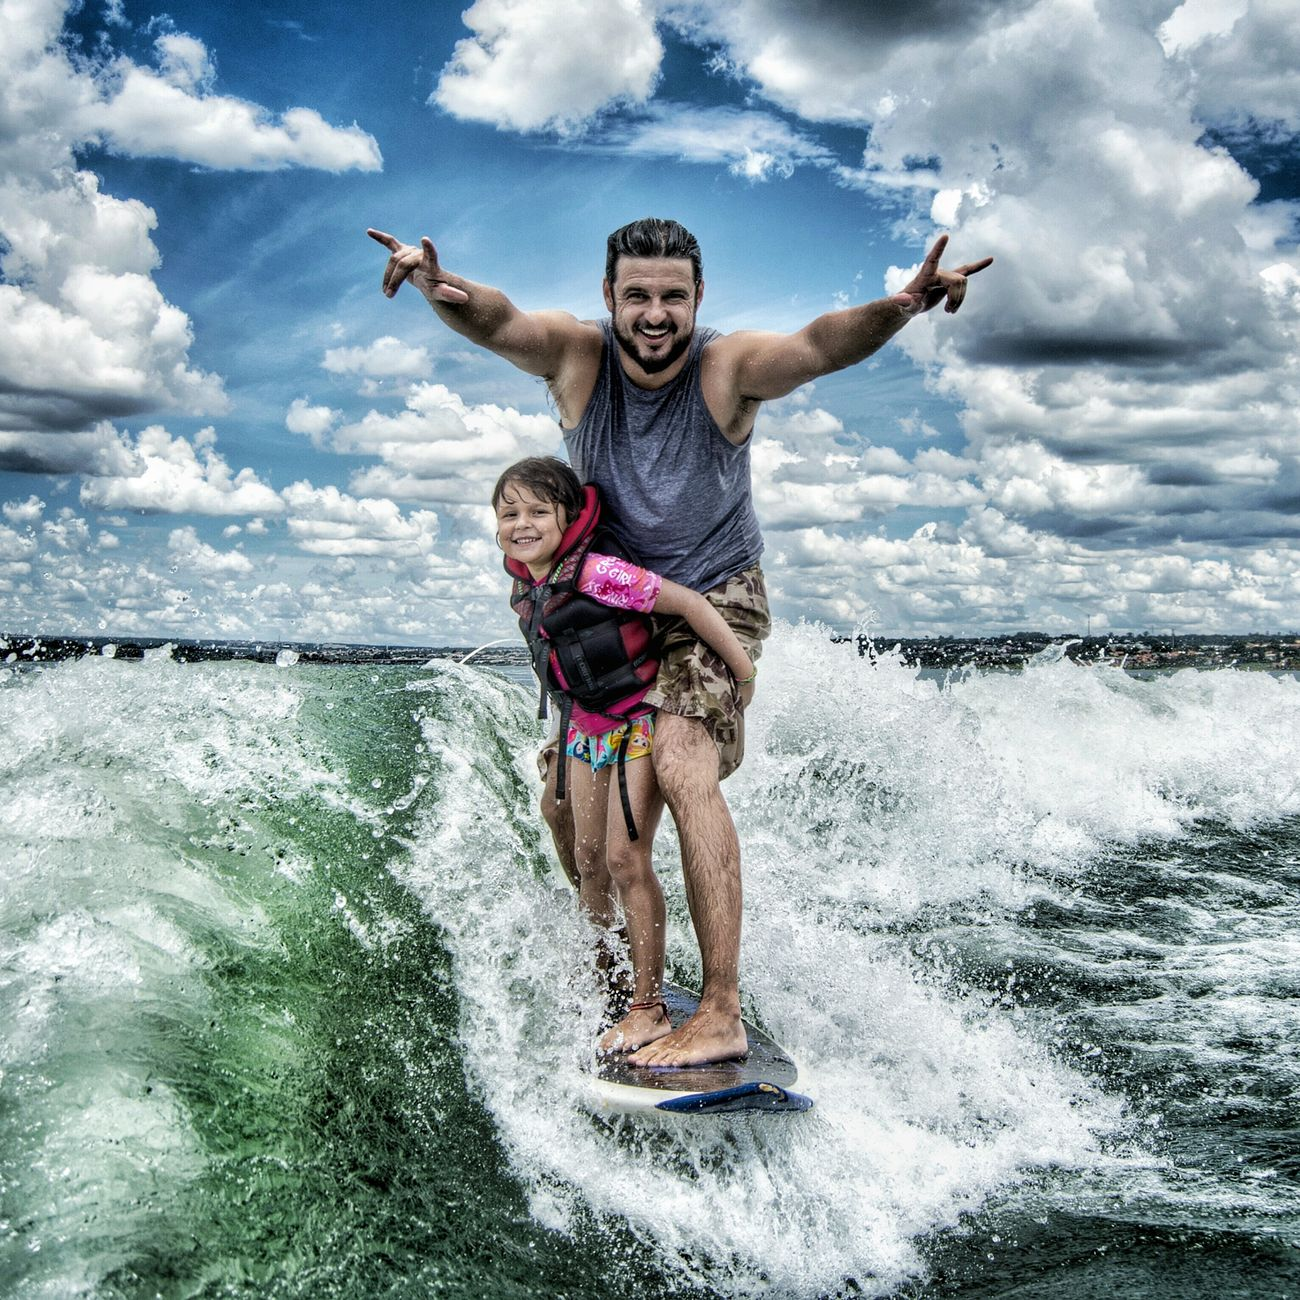 Vacations Motion Cloud - Sky Looking At Camera Child Summer Leisure Activity Travel Destinations Multi Colored Outdoors Fun Portrait People Cheerful Water Cloudscape Sport One Person Sky Brazil Brasília Lago Paranoa Wakesurf Wakesurfing Surfing